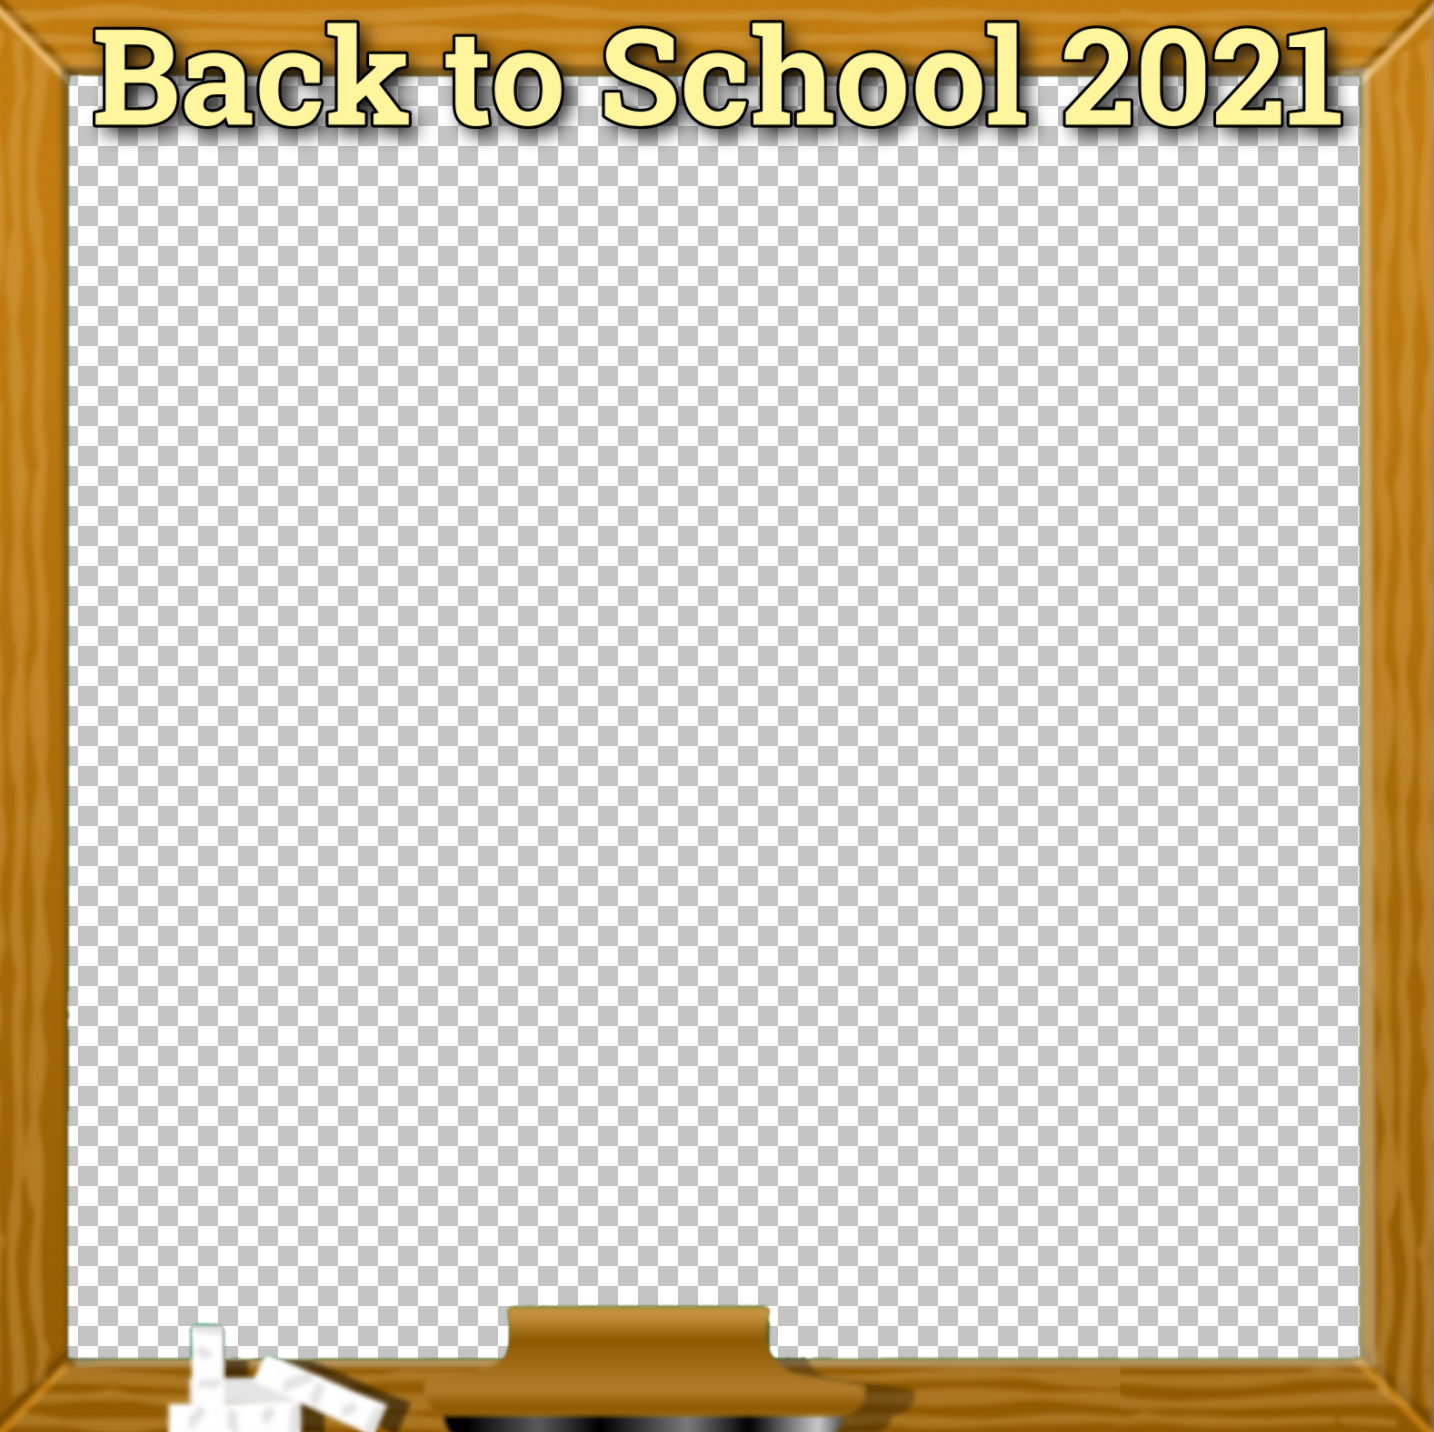 """A square photo frame with a chalkboard design and """"Back to School 2021"""" displayed."""